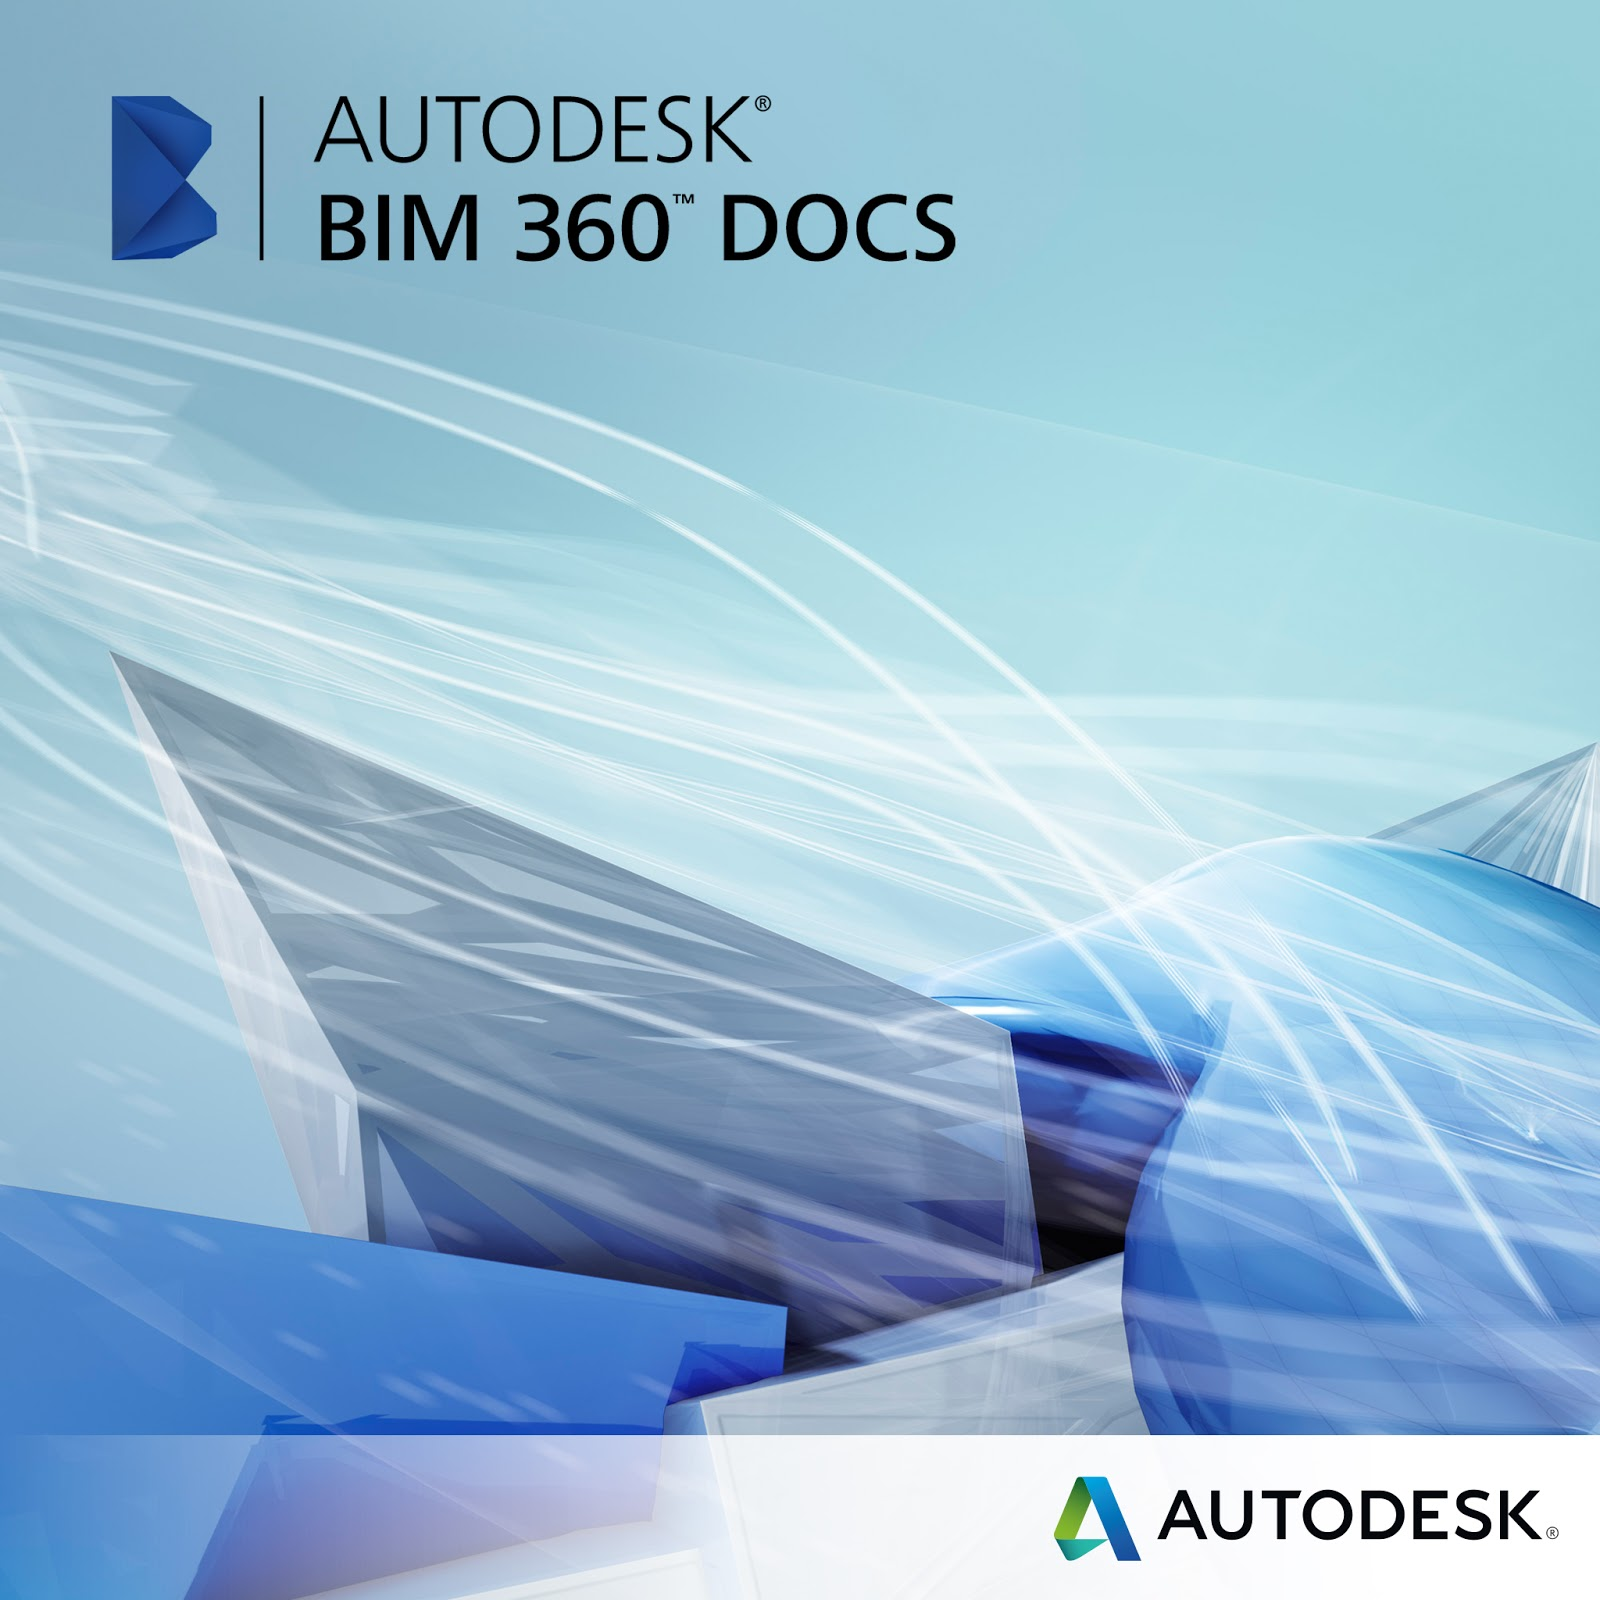 Autodesk's_BIM_360_Docs_support_for_Android_devices_has_been_launched